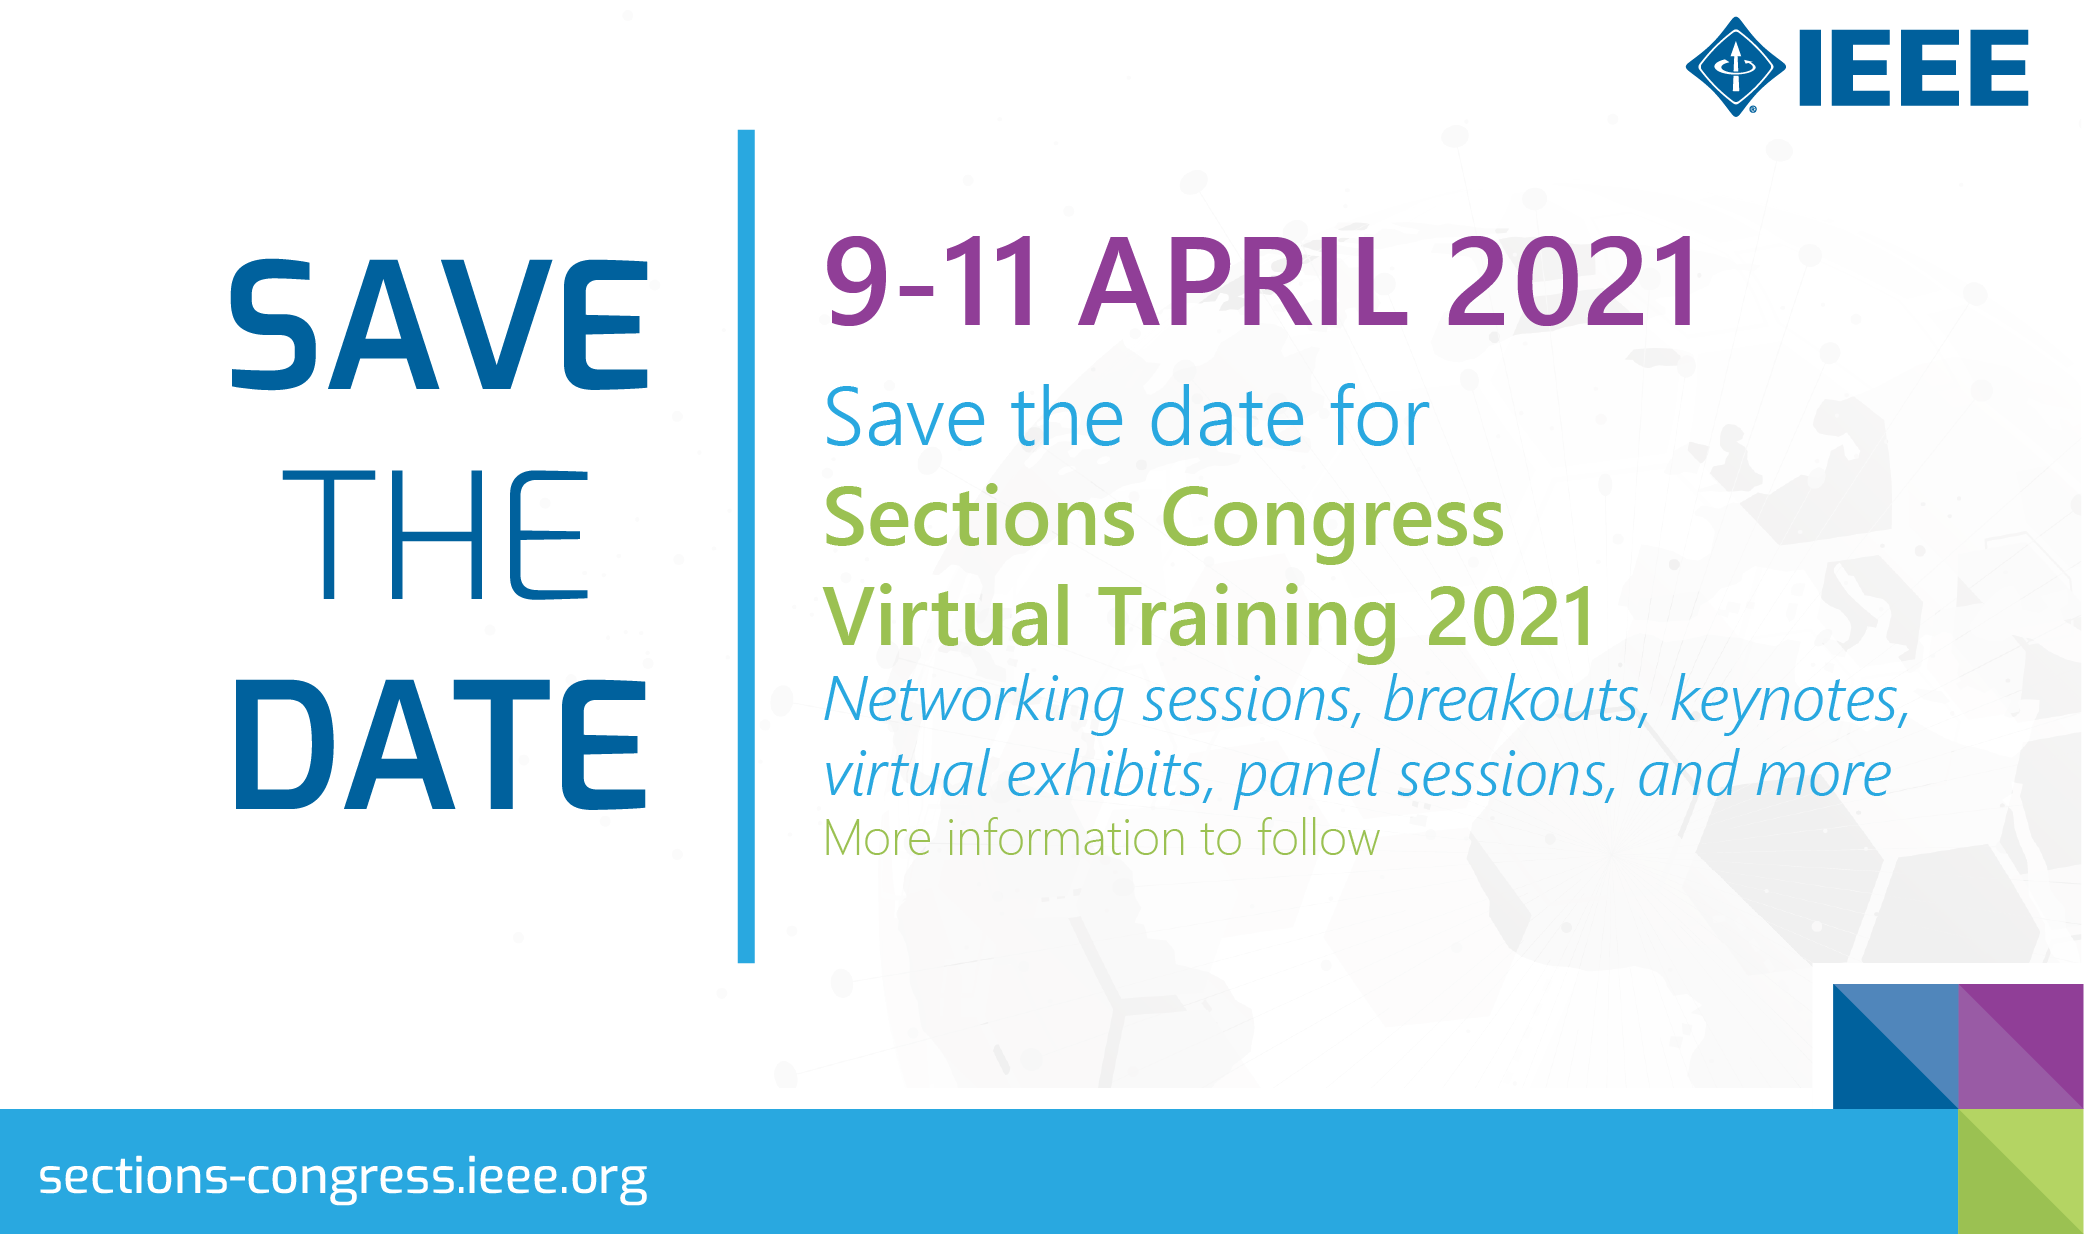 Save the Date - Sections Congress Virtual Training 2021